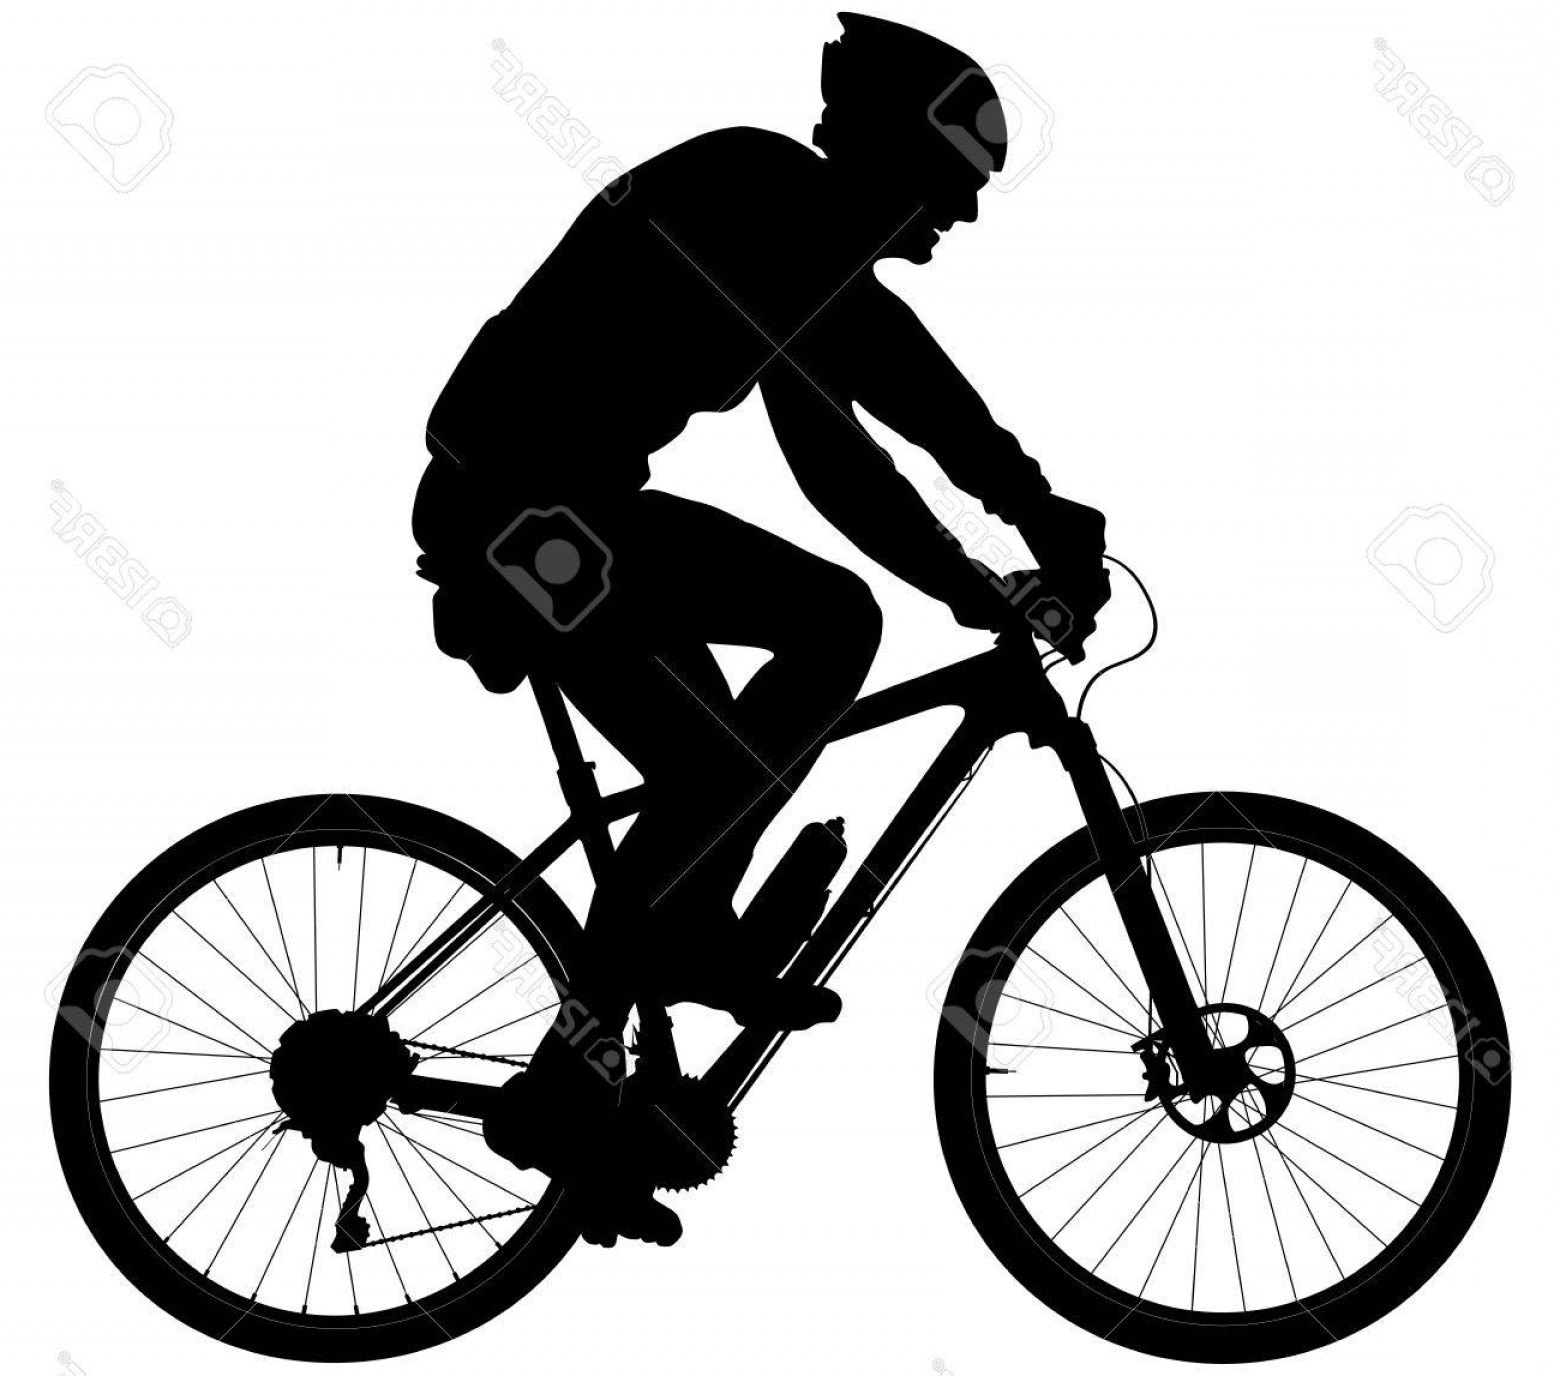 Mountain Bike Silhouette Vector: Photostock Vector Old Man Cyclists On Sports Mountainbike Black Silhouette